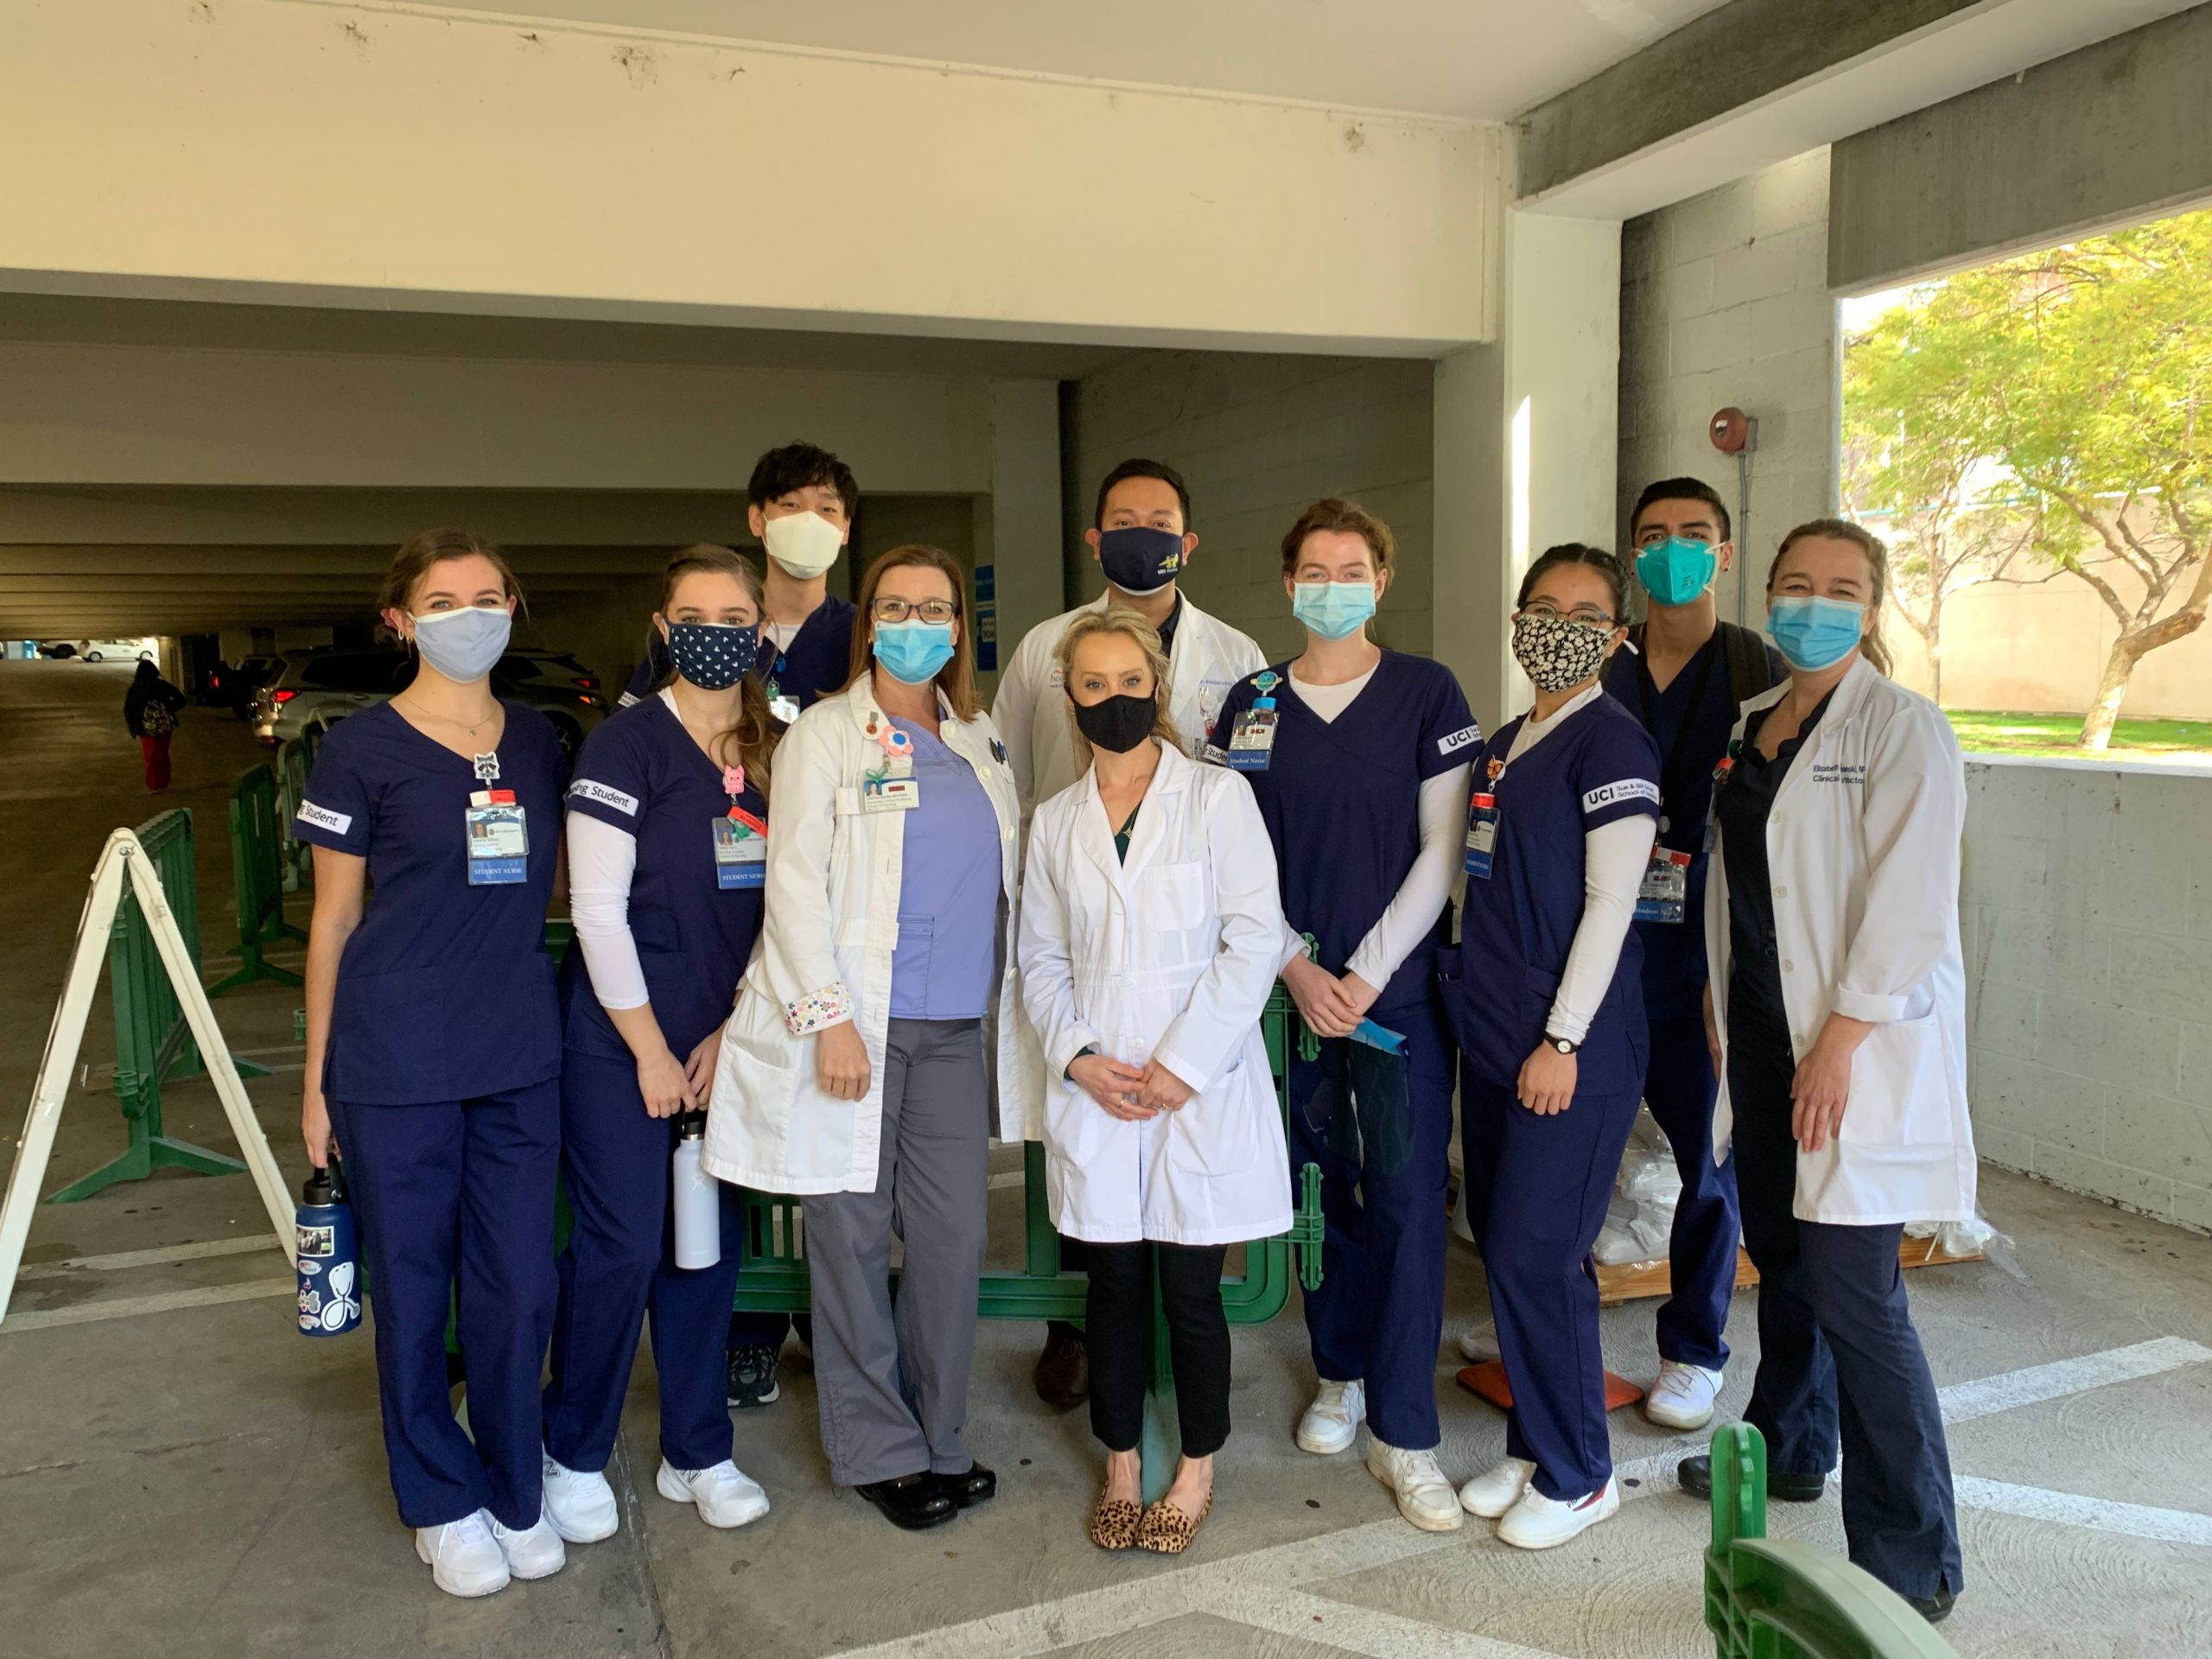 UCI School of Nursing faculty (in white coats from left), Leanne Burke, Stephanie Au and Elizabeth Symanski with nursing students at son, we strive to give our students clinical experiences that are impactful